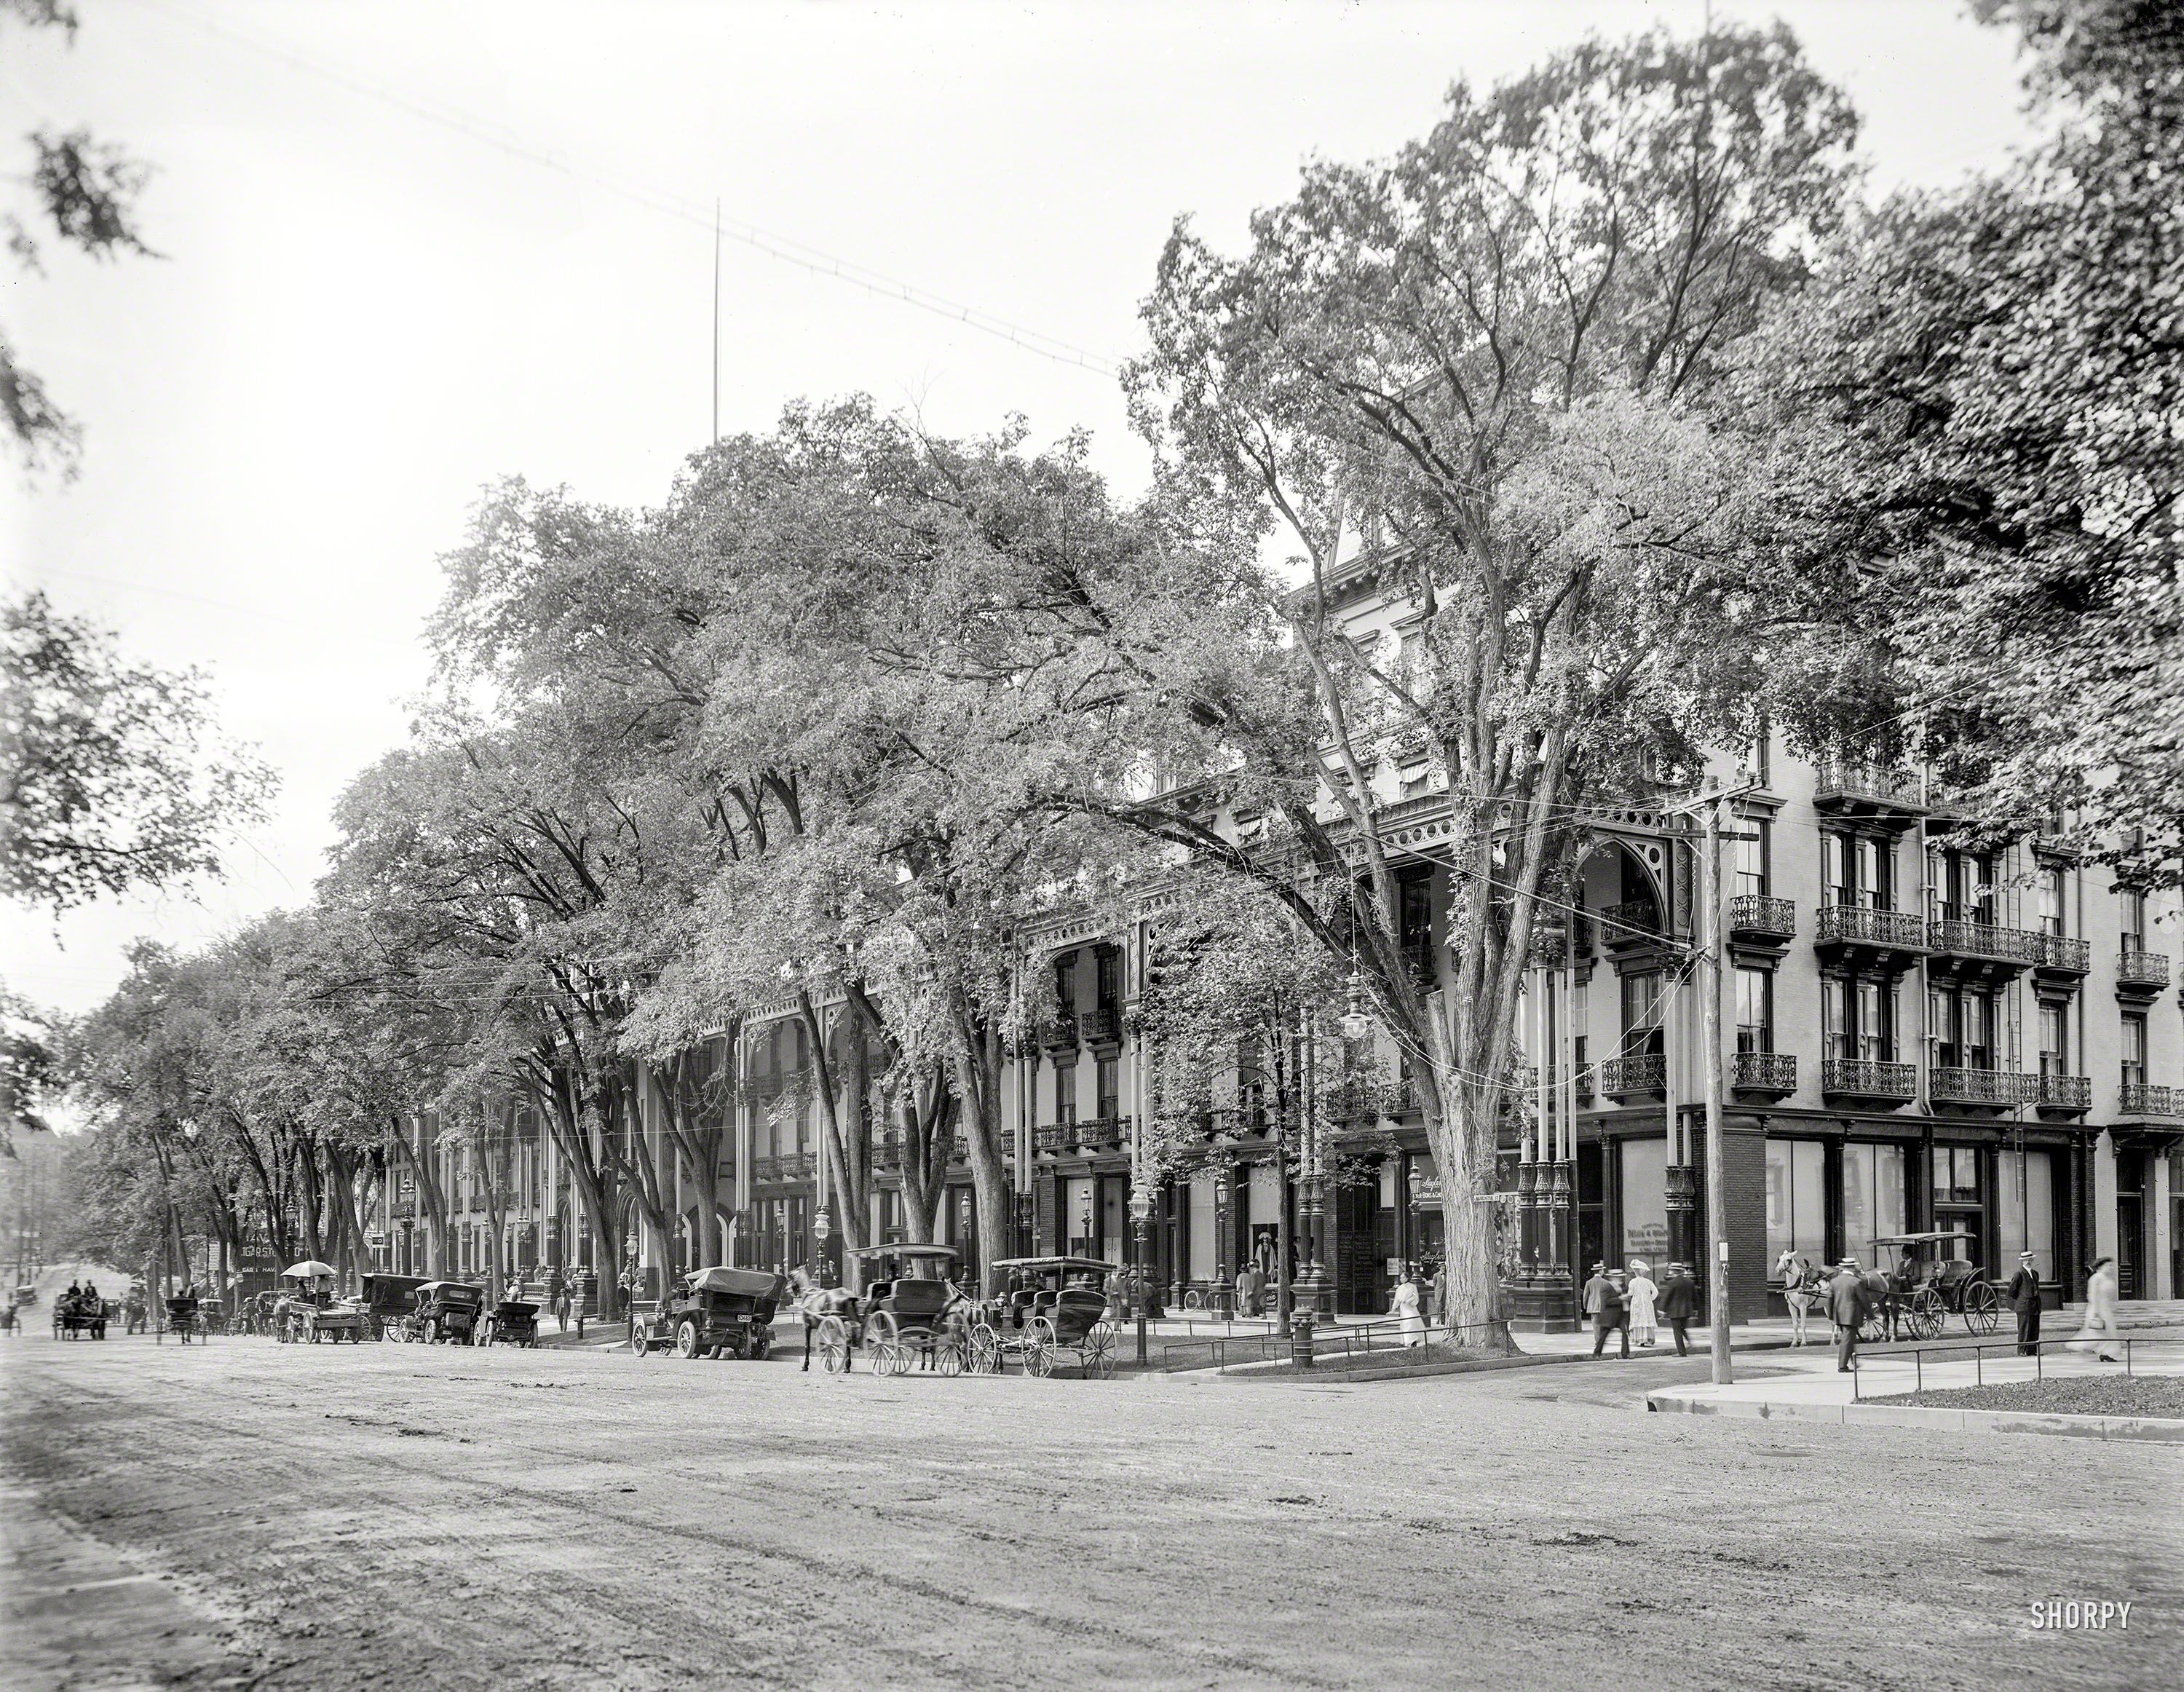 C 1908 Broadway And Grand Union Hotel Saratoga Springs N Y Detroit Publishing Co Shorpy Historic Picture Archive